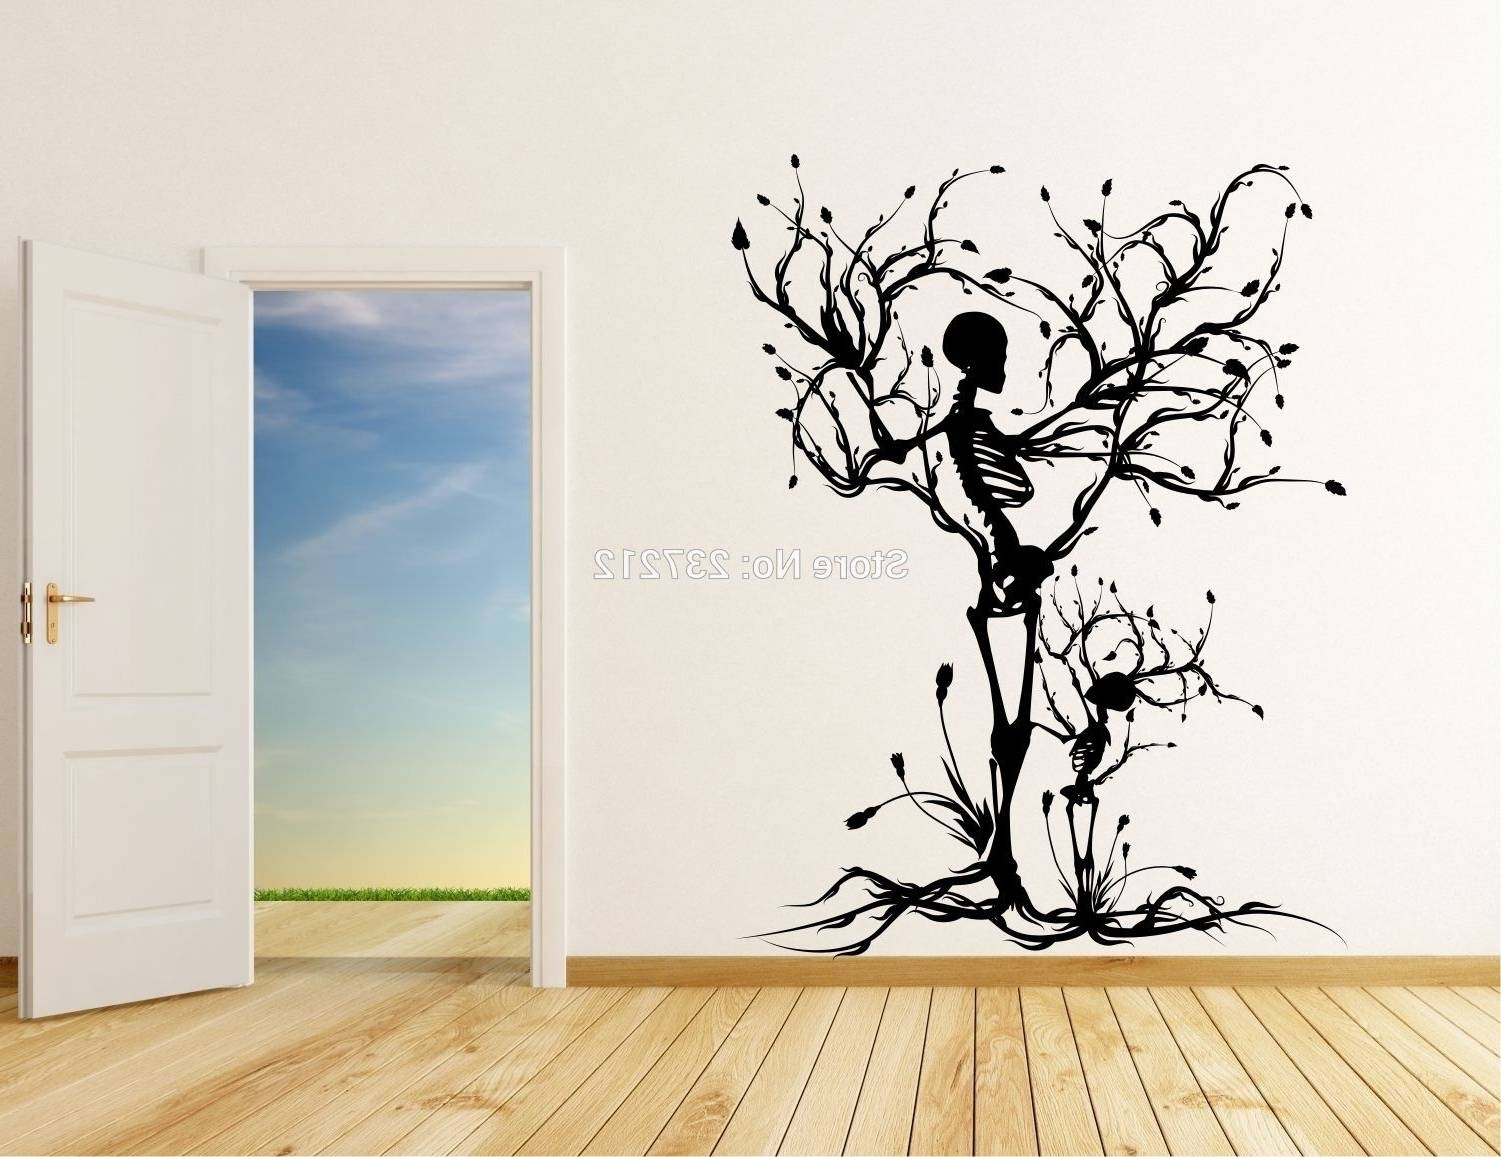 21 Collection Of Kohls Wall Art Decals Intended For Most Up To Date Kohl's Canvas Wall Art (Gallery 10 of 15)